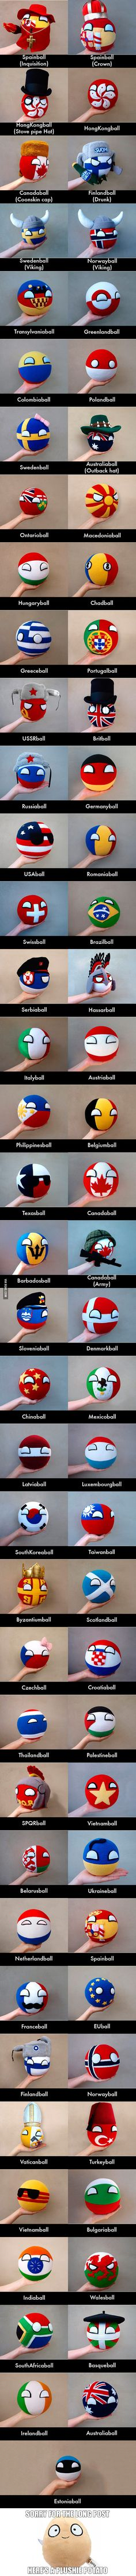 Meet the plushie countryballs. Credit: ThePlushieMagnate